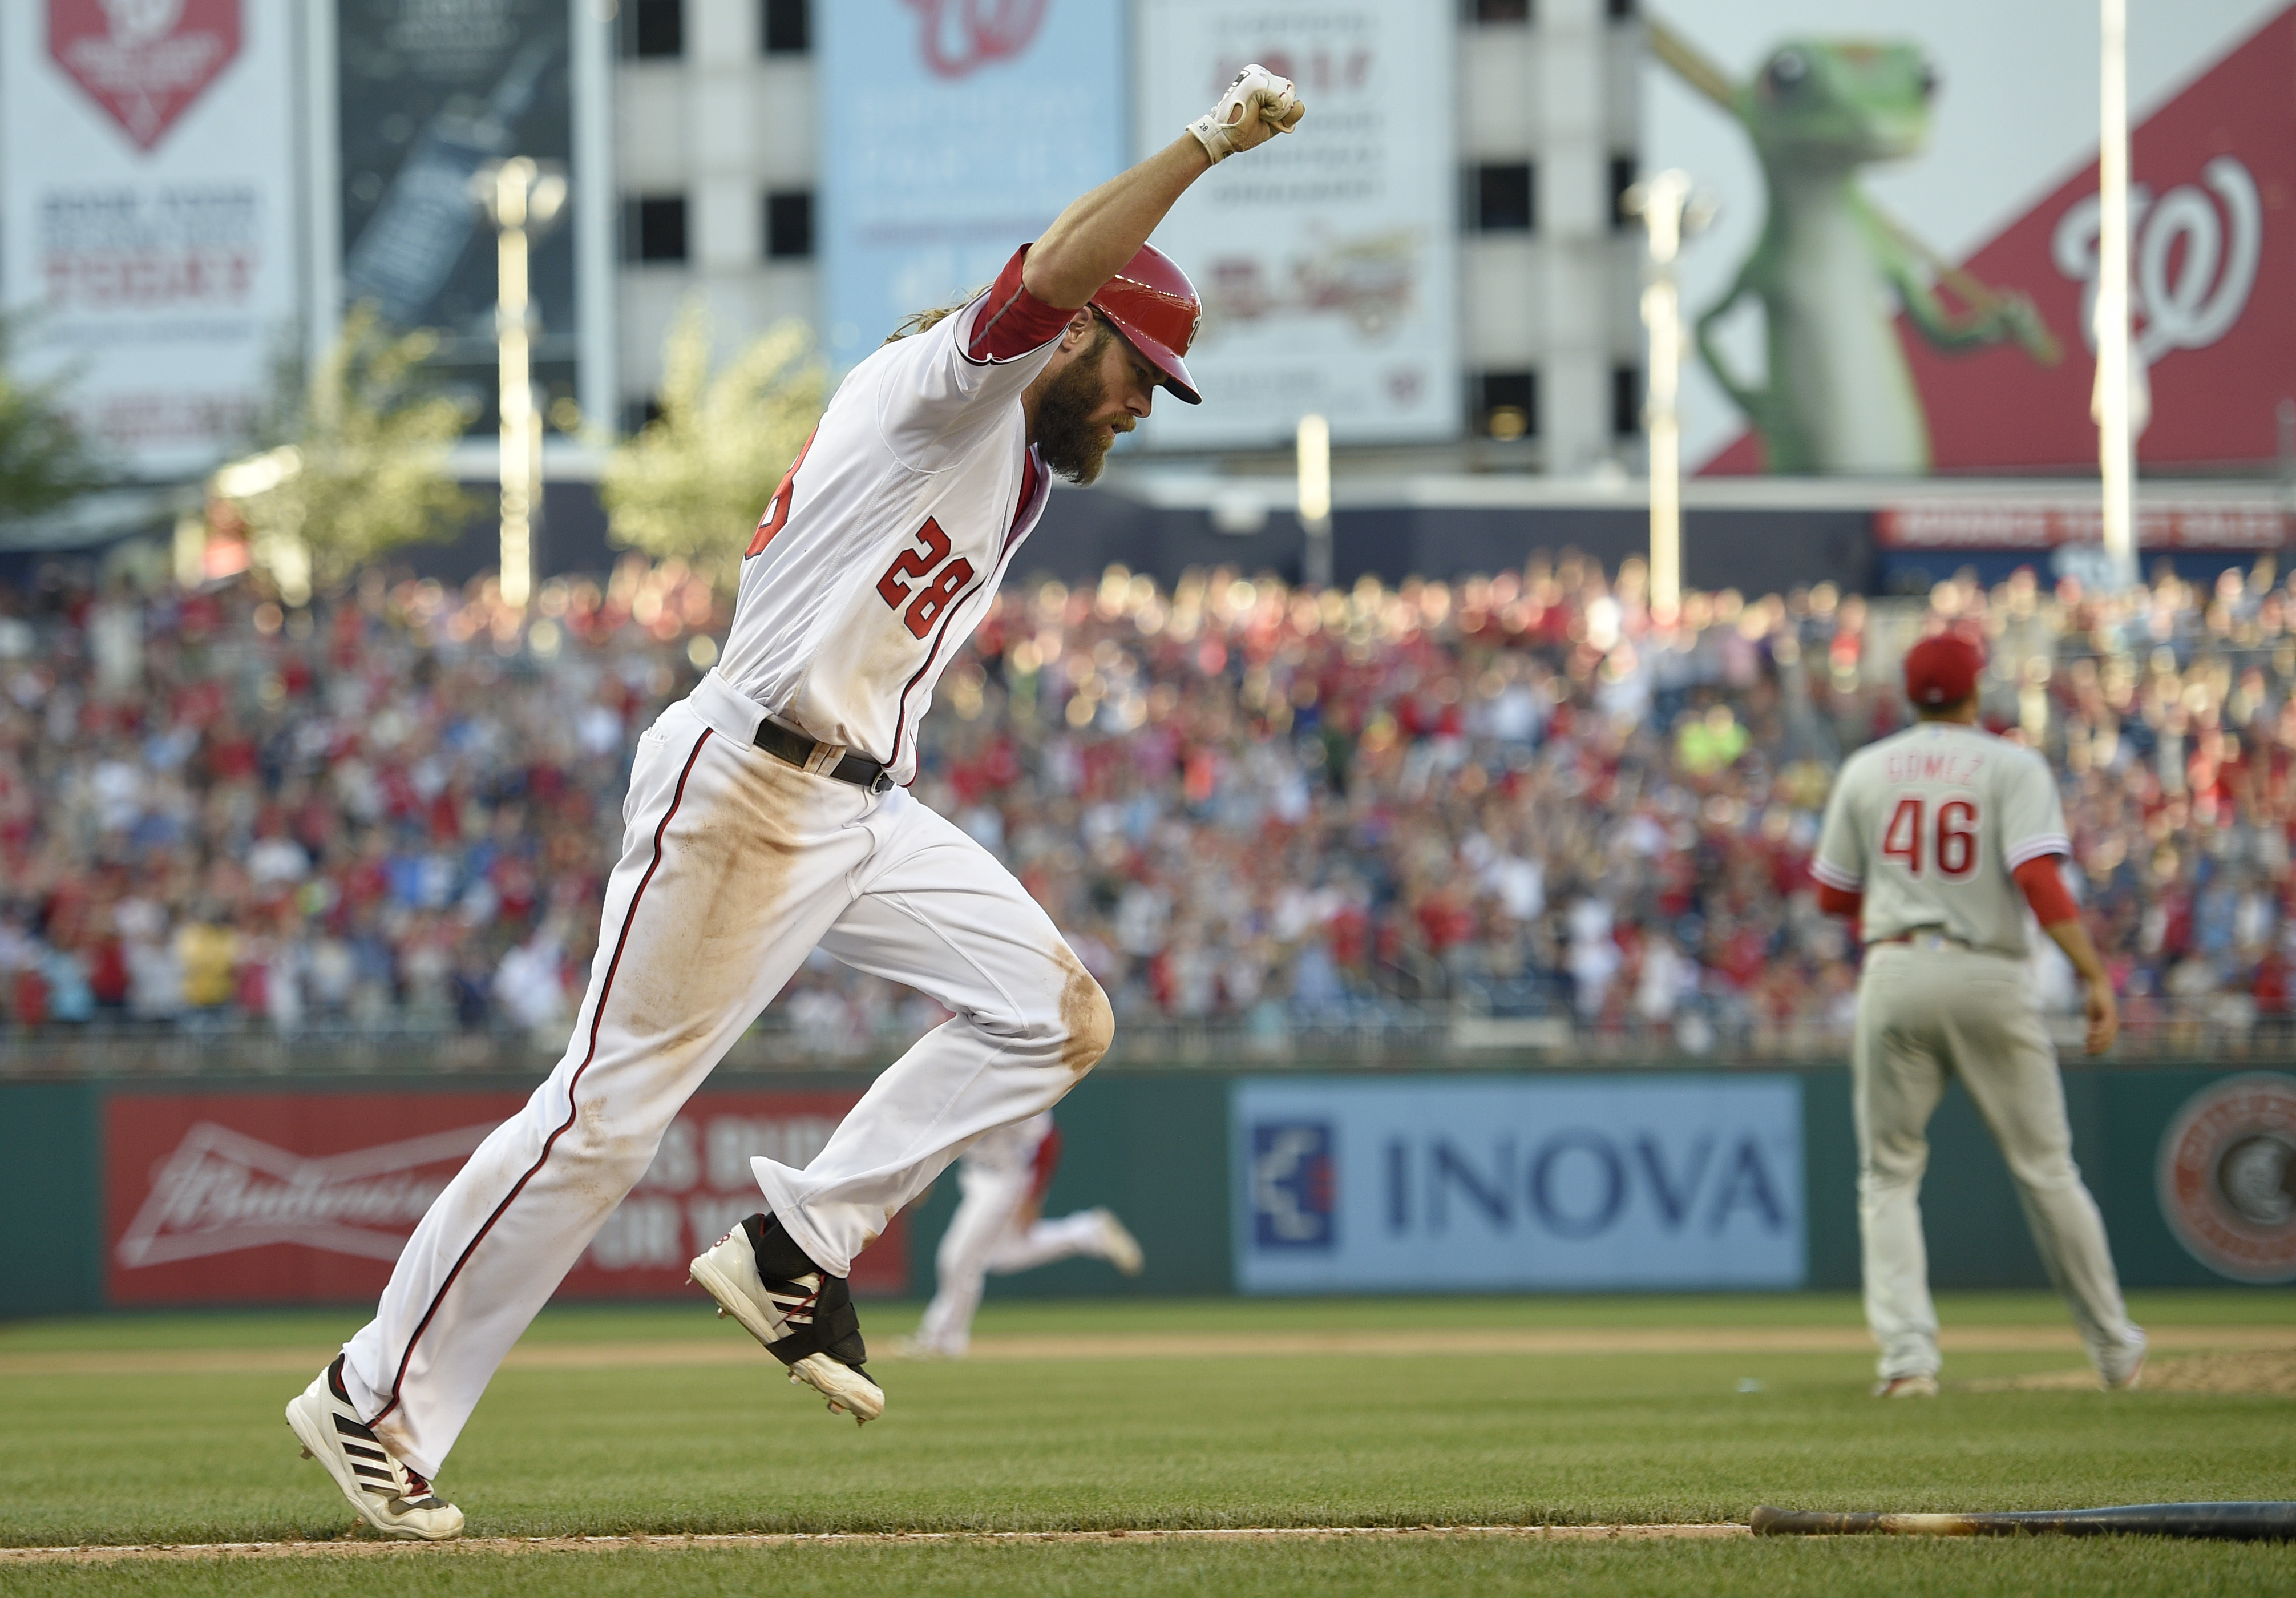 Washington Nationals' Jayson Werth reacts after he hit a walk off single that drove in two runs during the ninth inning of a baseball game against the Philadelphia Phillies, Sunday, June 12, 2016, in Washington. (AP Photo/Nick Wass)